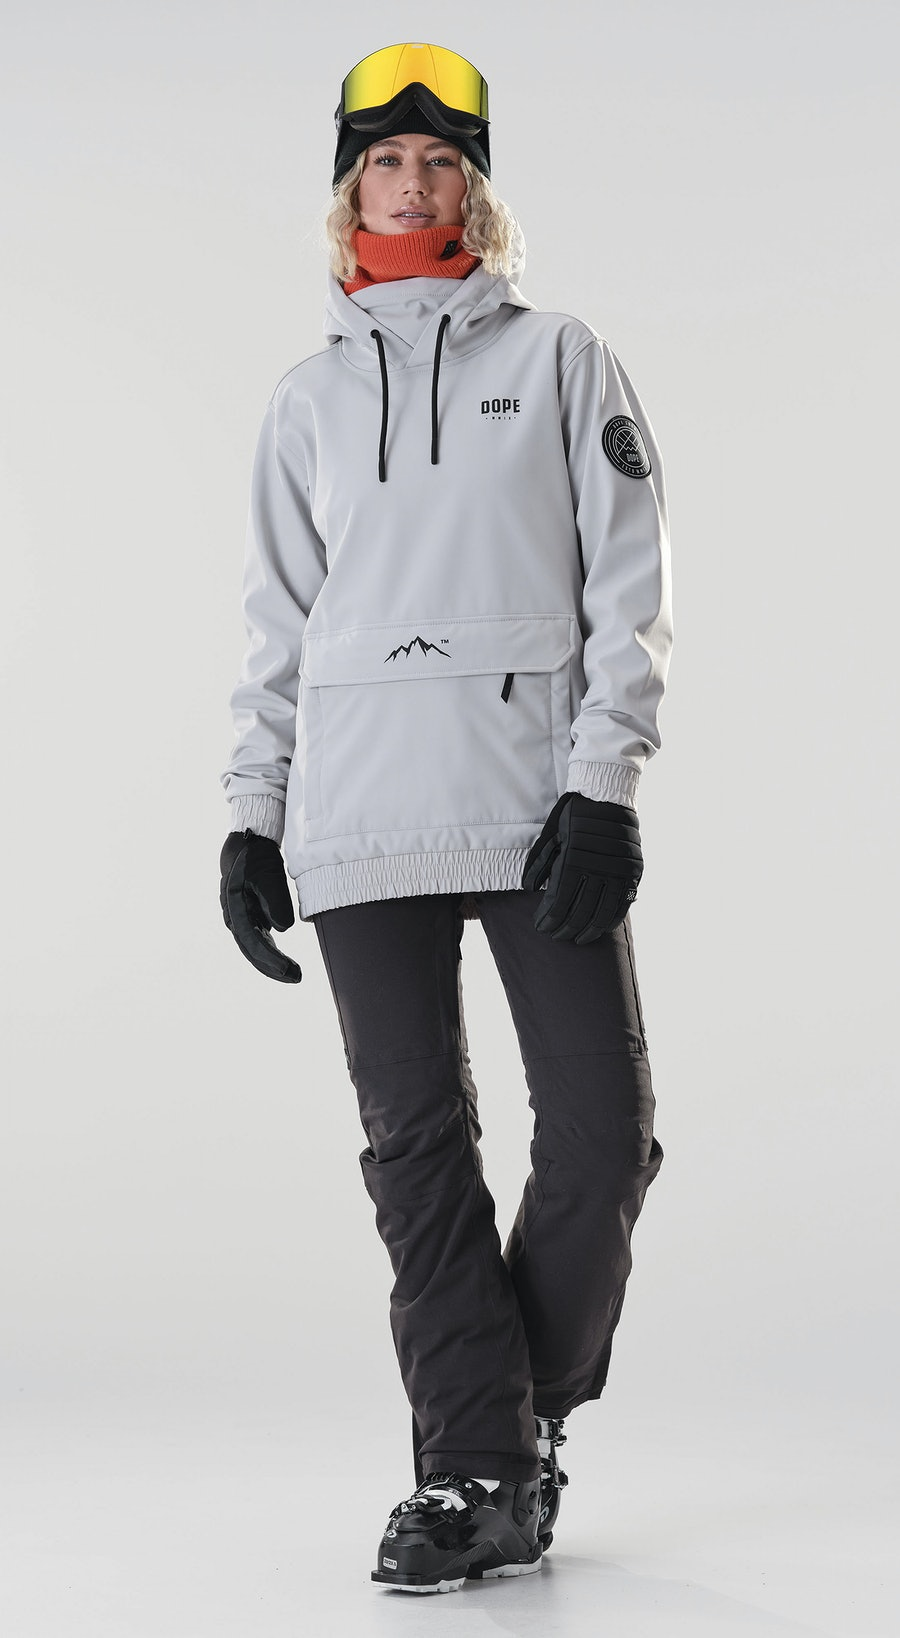 Dope Wylie Capital W Light Grey Vêtements de Ski Multi